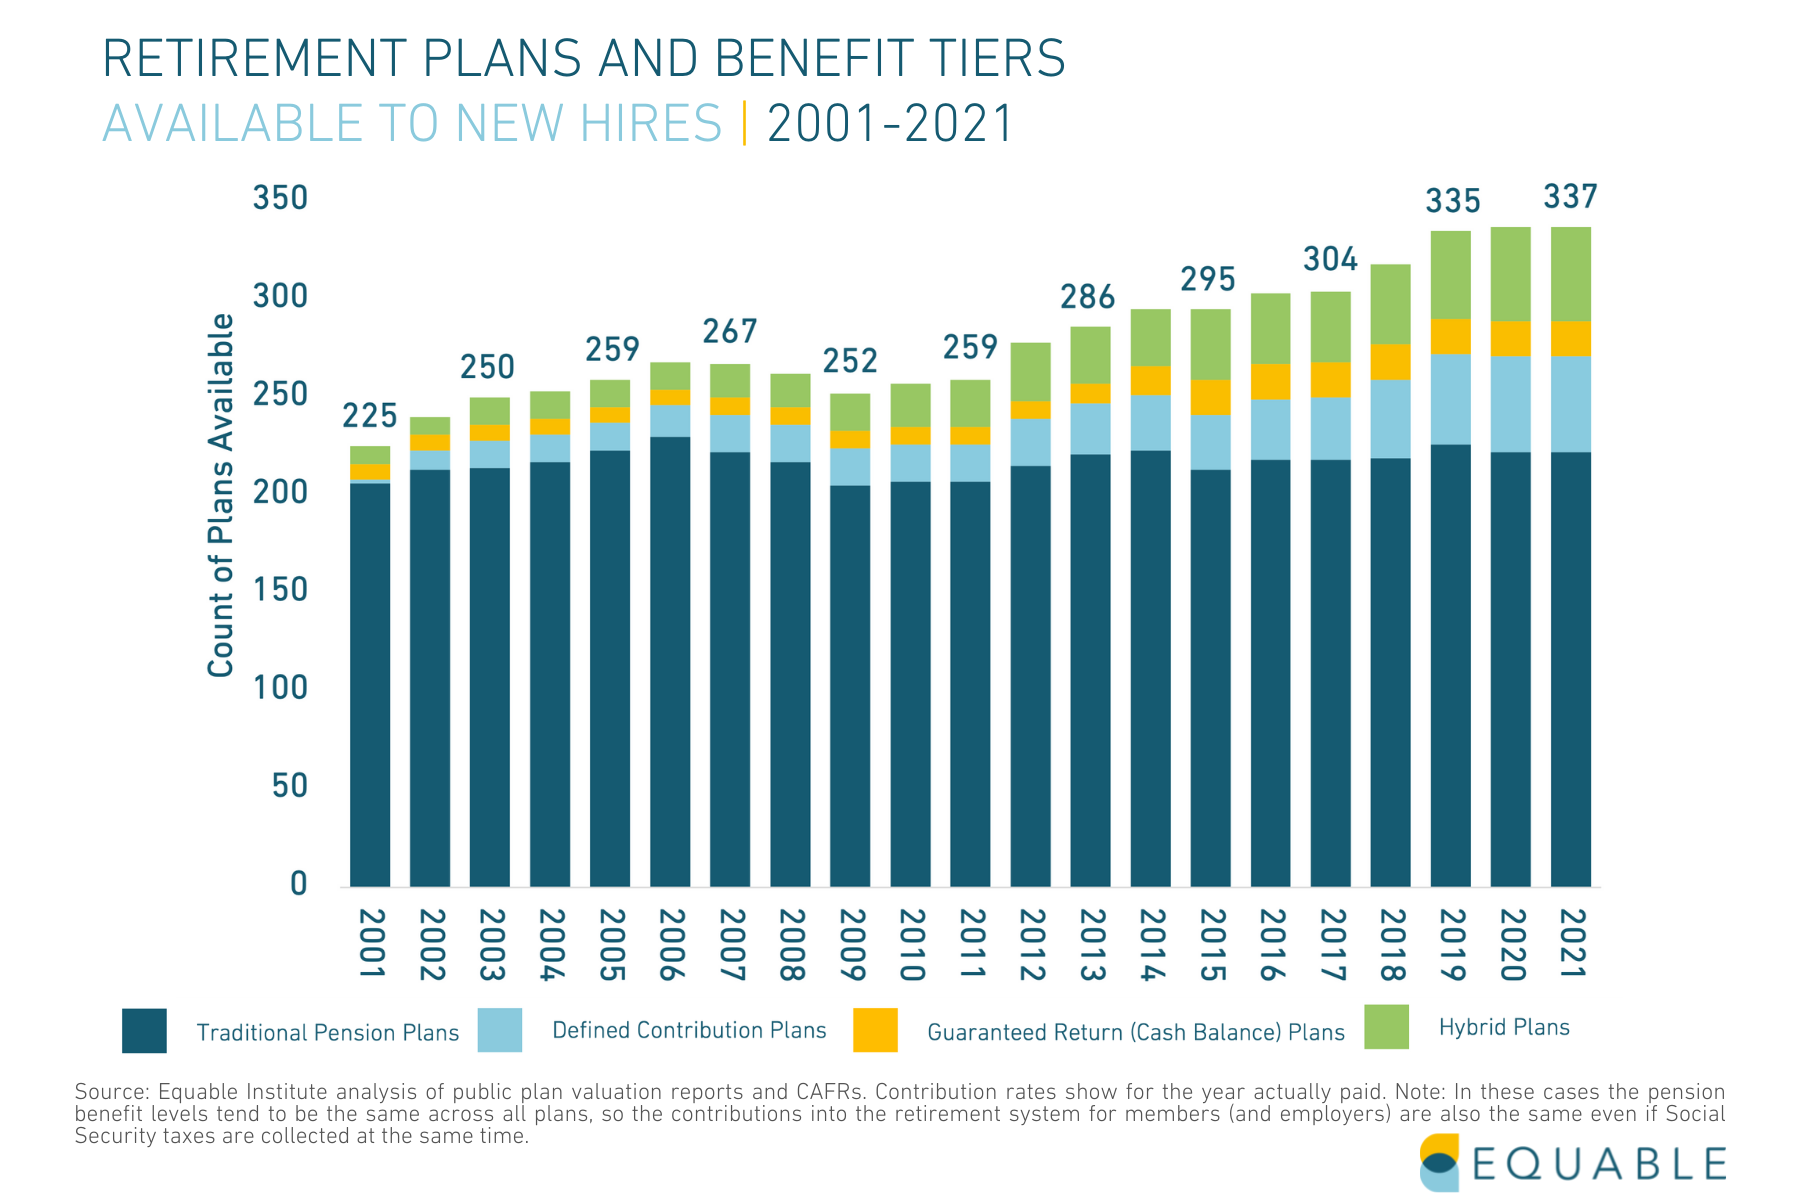 Public Retirement Plans and Benefit Tiers available to new hires